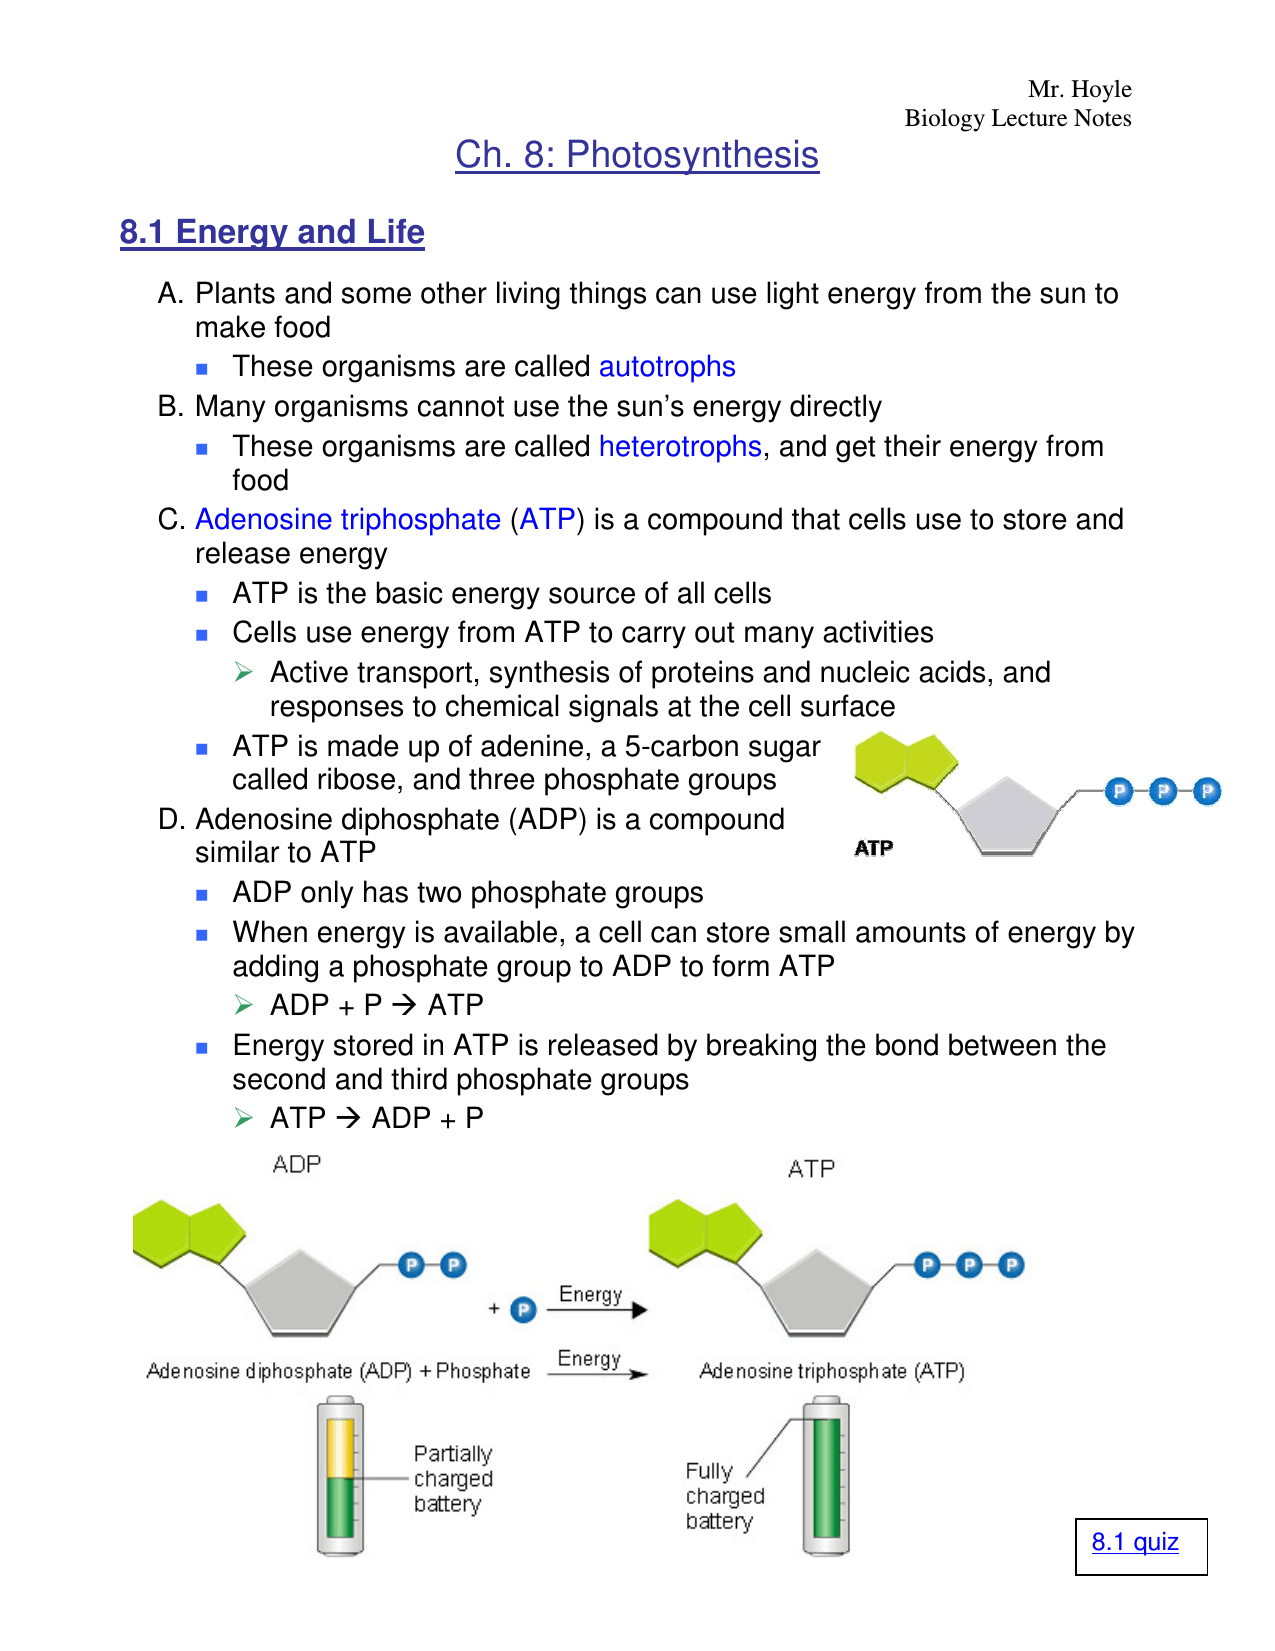 Ch 8 Photosynthesis